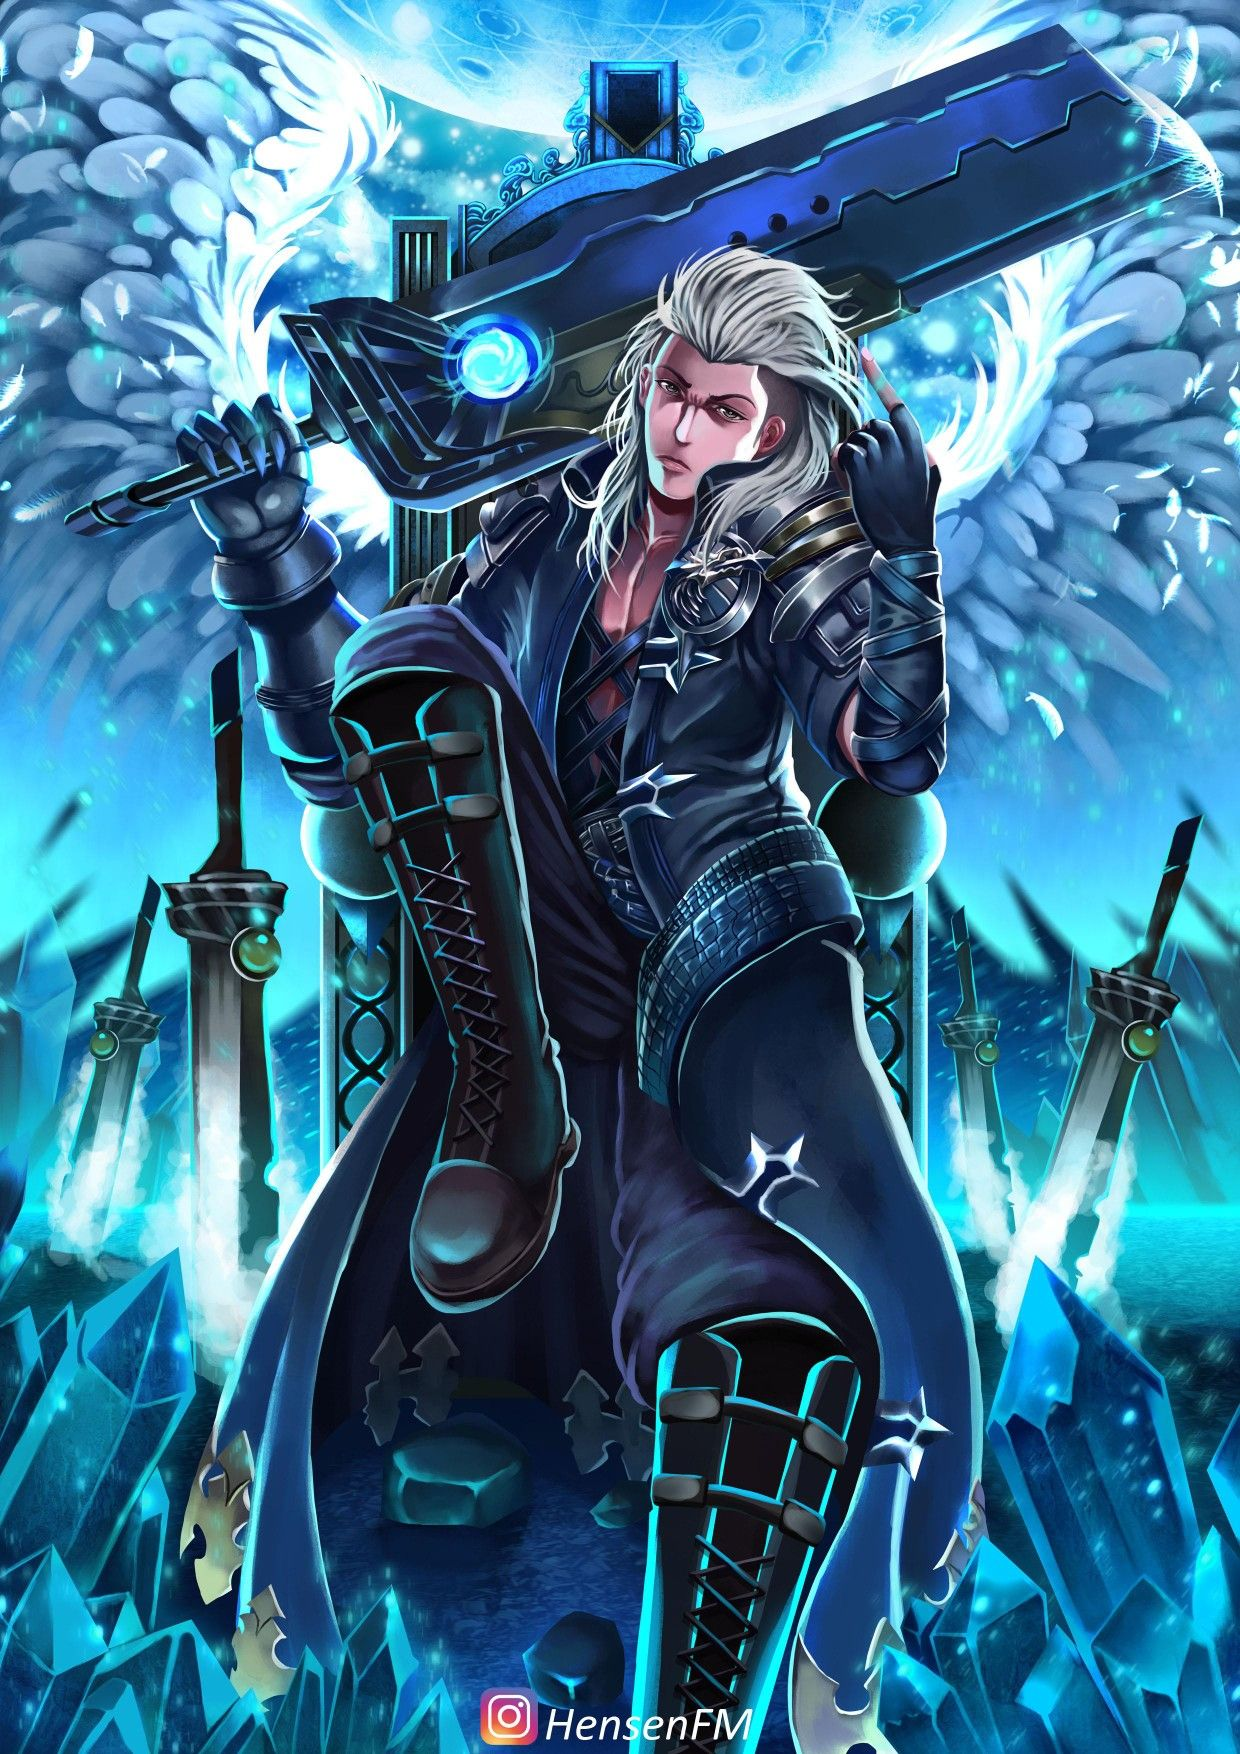 Mobile legend Alucard